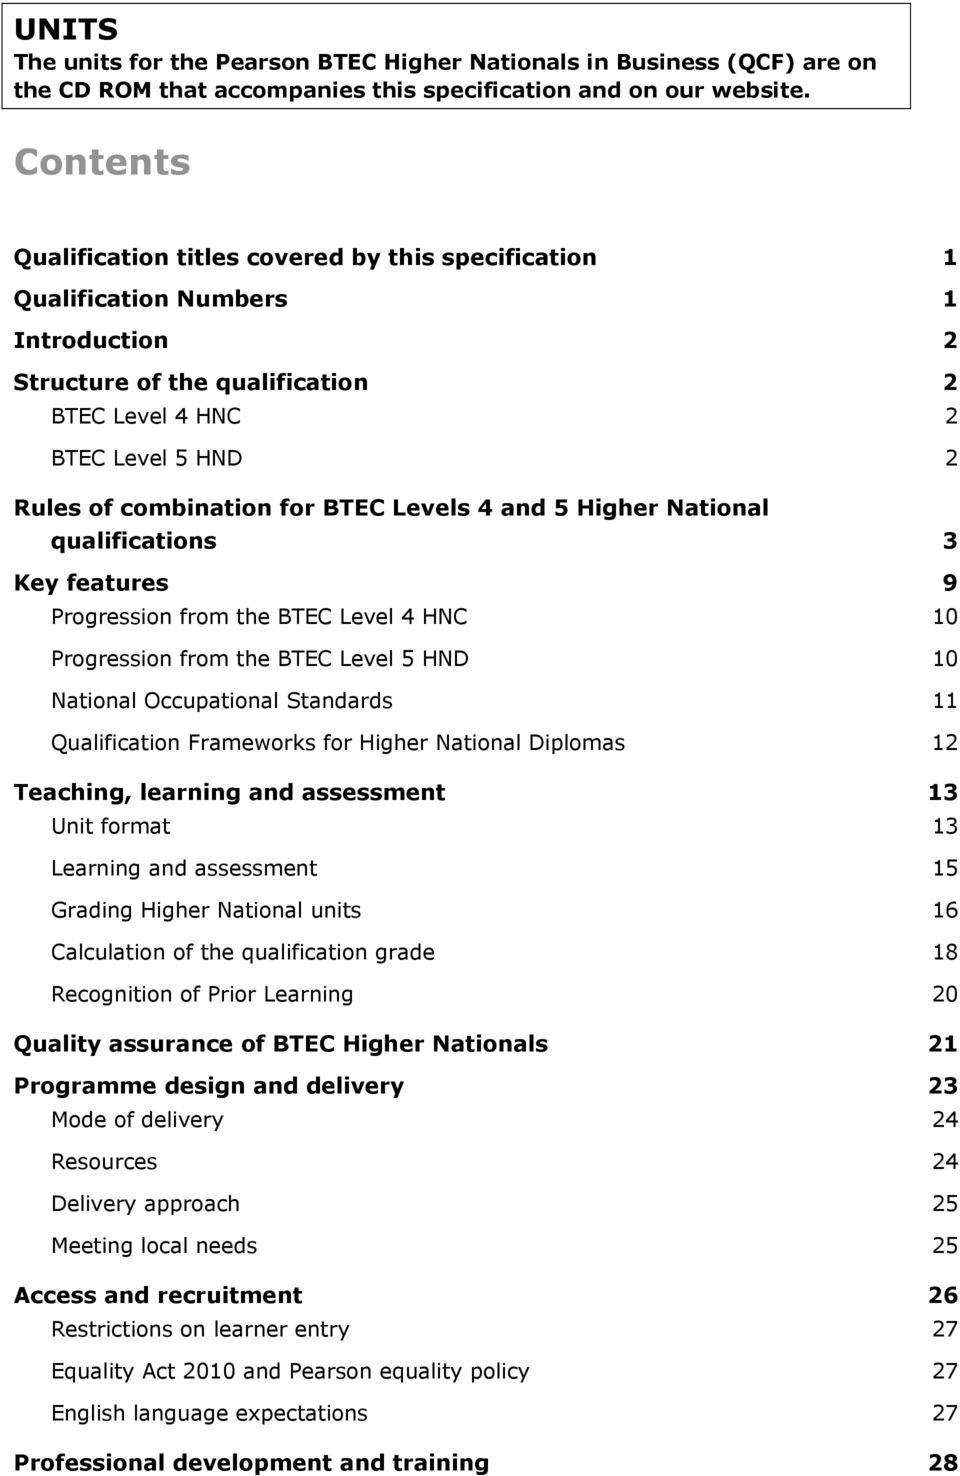 BTEC Levels 4 and 5 Higher National qualifications 3 Key features 9 Progression from the BTEC Level 4 HNC 10 Progression from the BTEC Level 5 HND 10 National Occupational Standards 11 Qualification